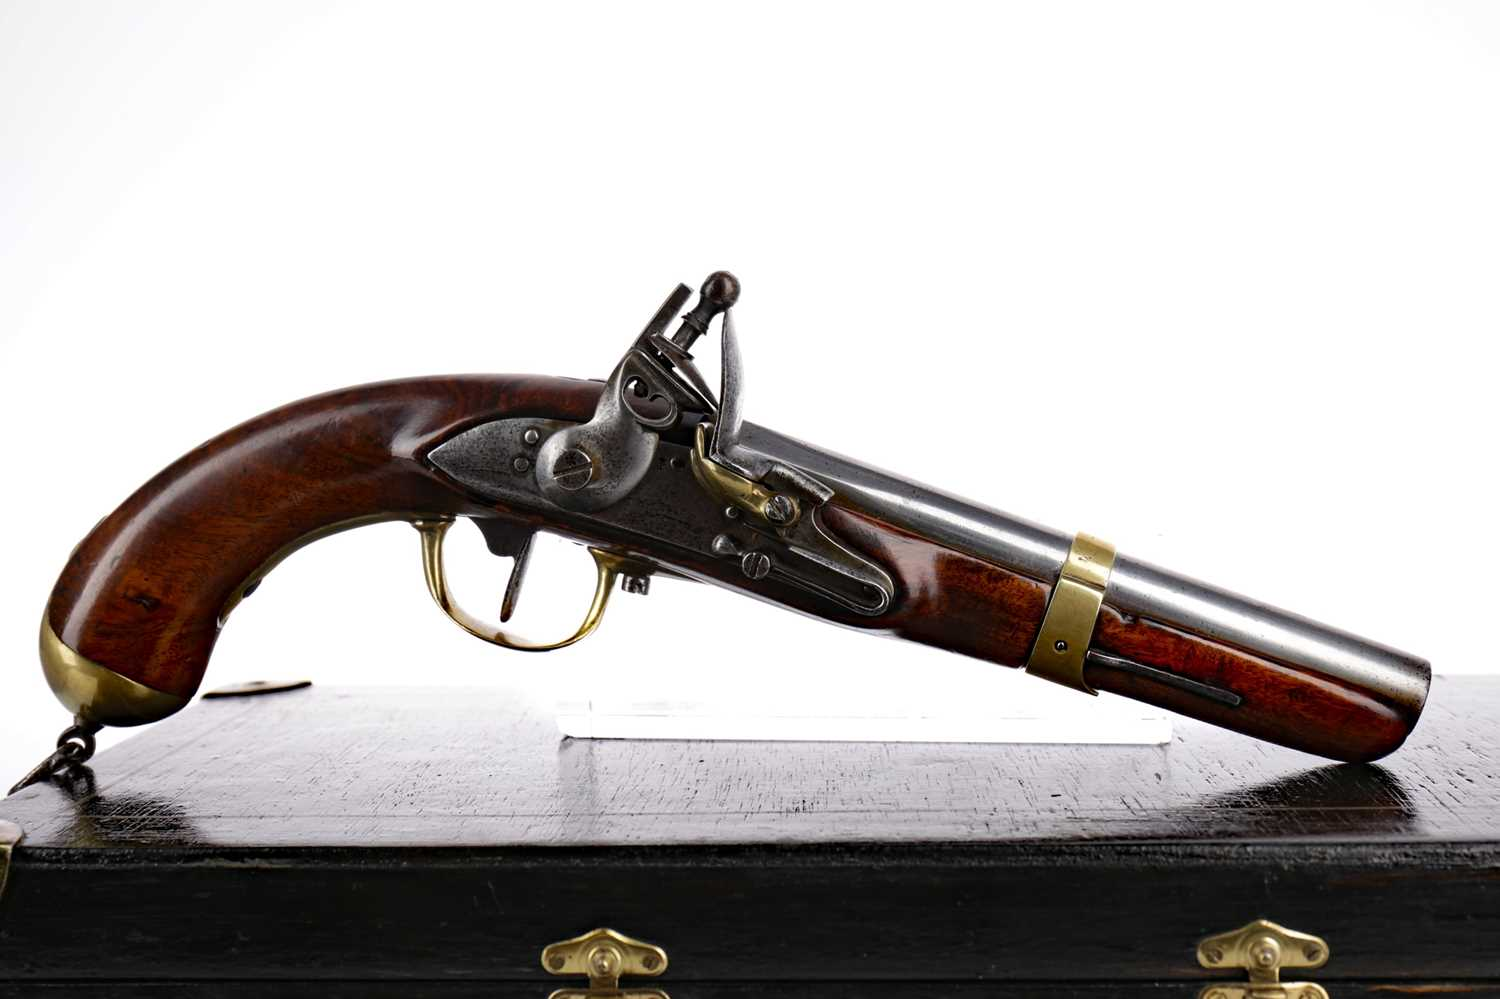 Lot 1388 - A LATE 18TH/EARLY 19TH CENTURY LIEGE CAVALRY OR DRAGOON MILITARY PISTOL